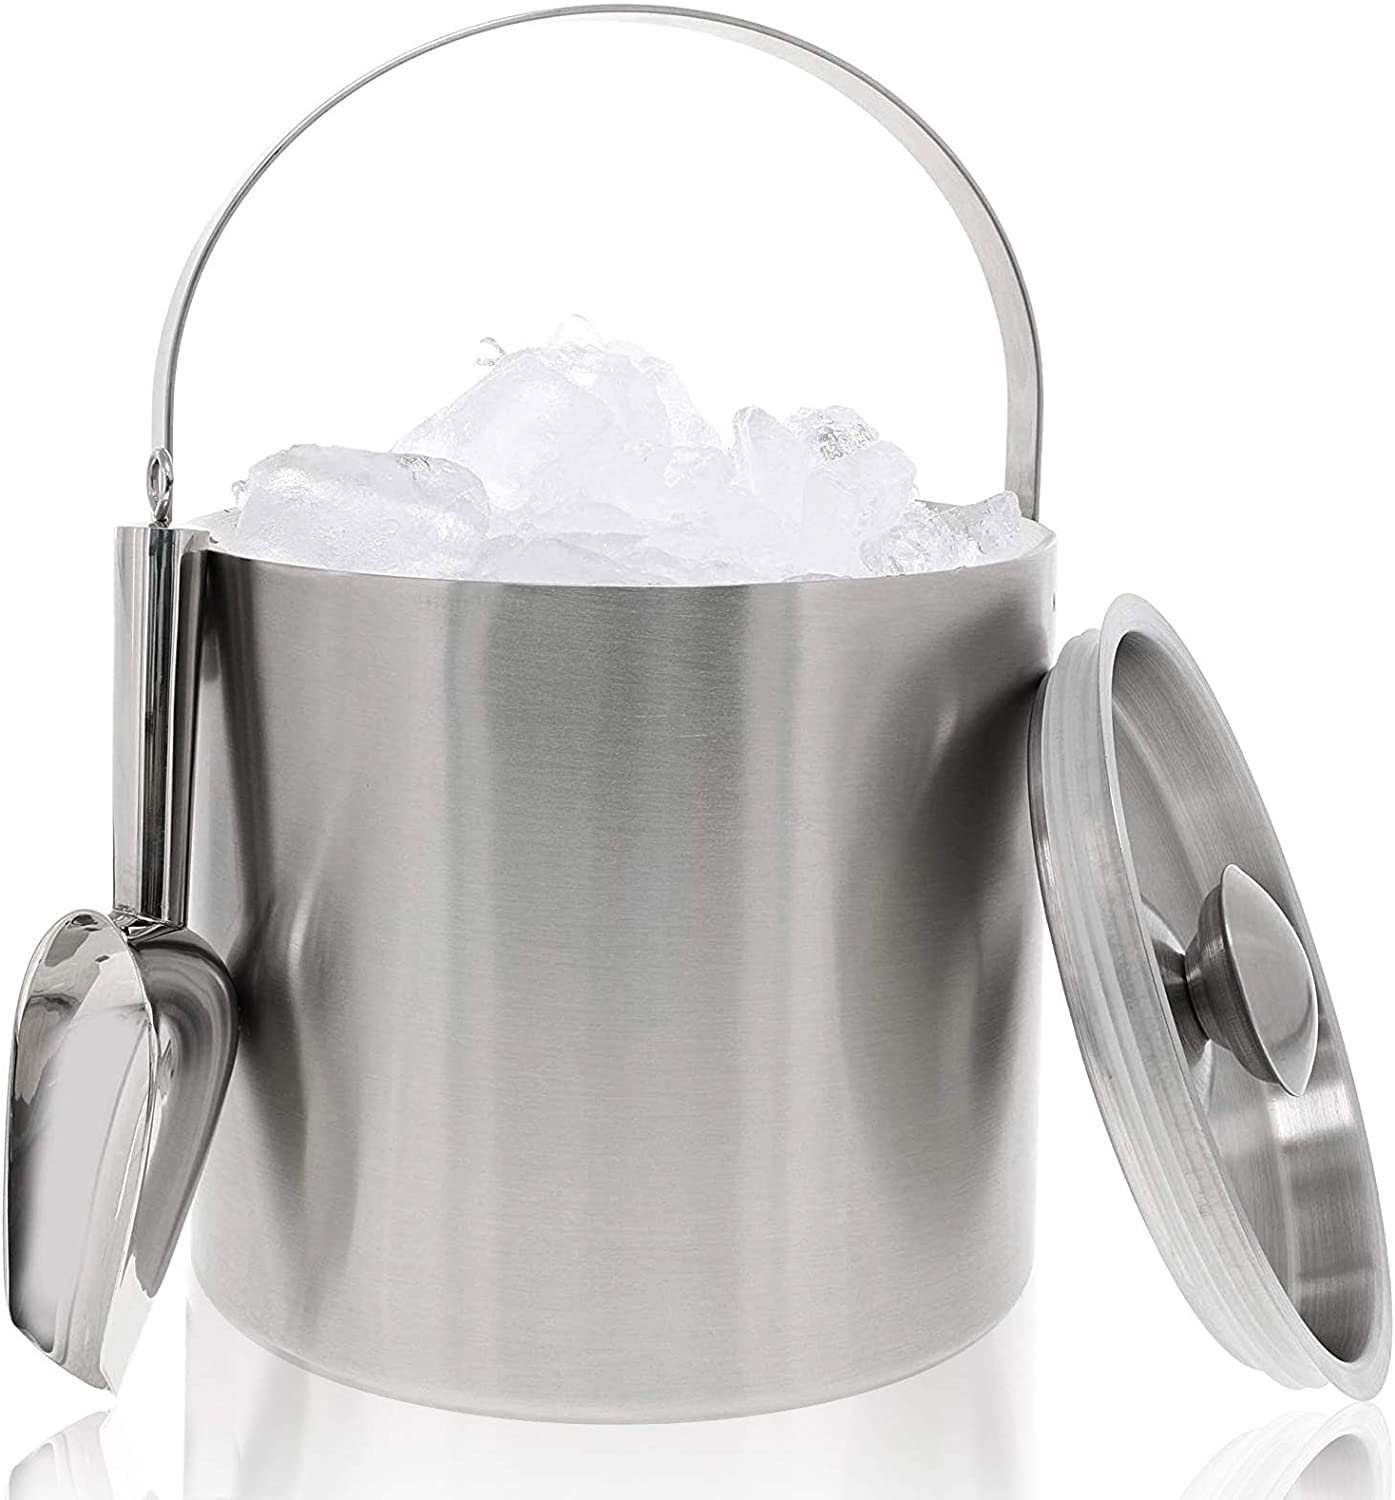 Juvale Insulated Stainless Steel Ice Bucket with Scoop, Lid and Handle (6.6 x 7.5 in)